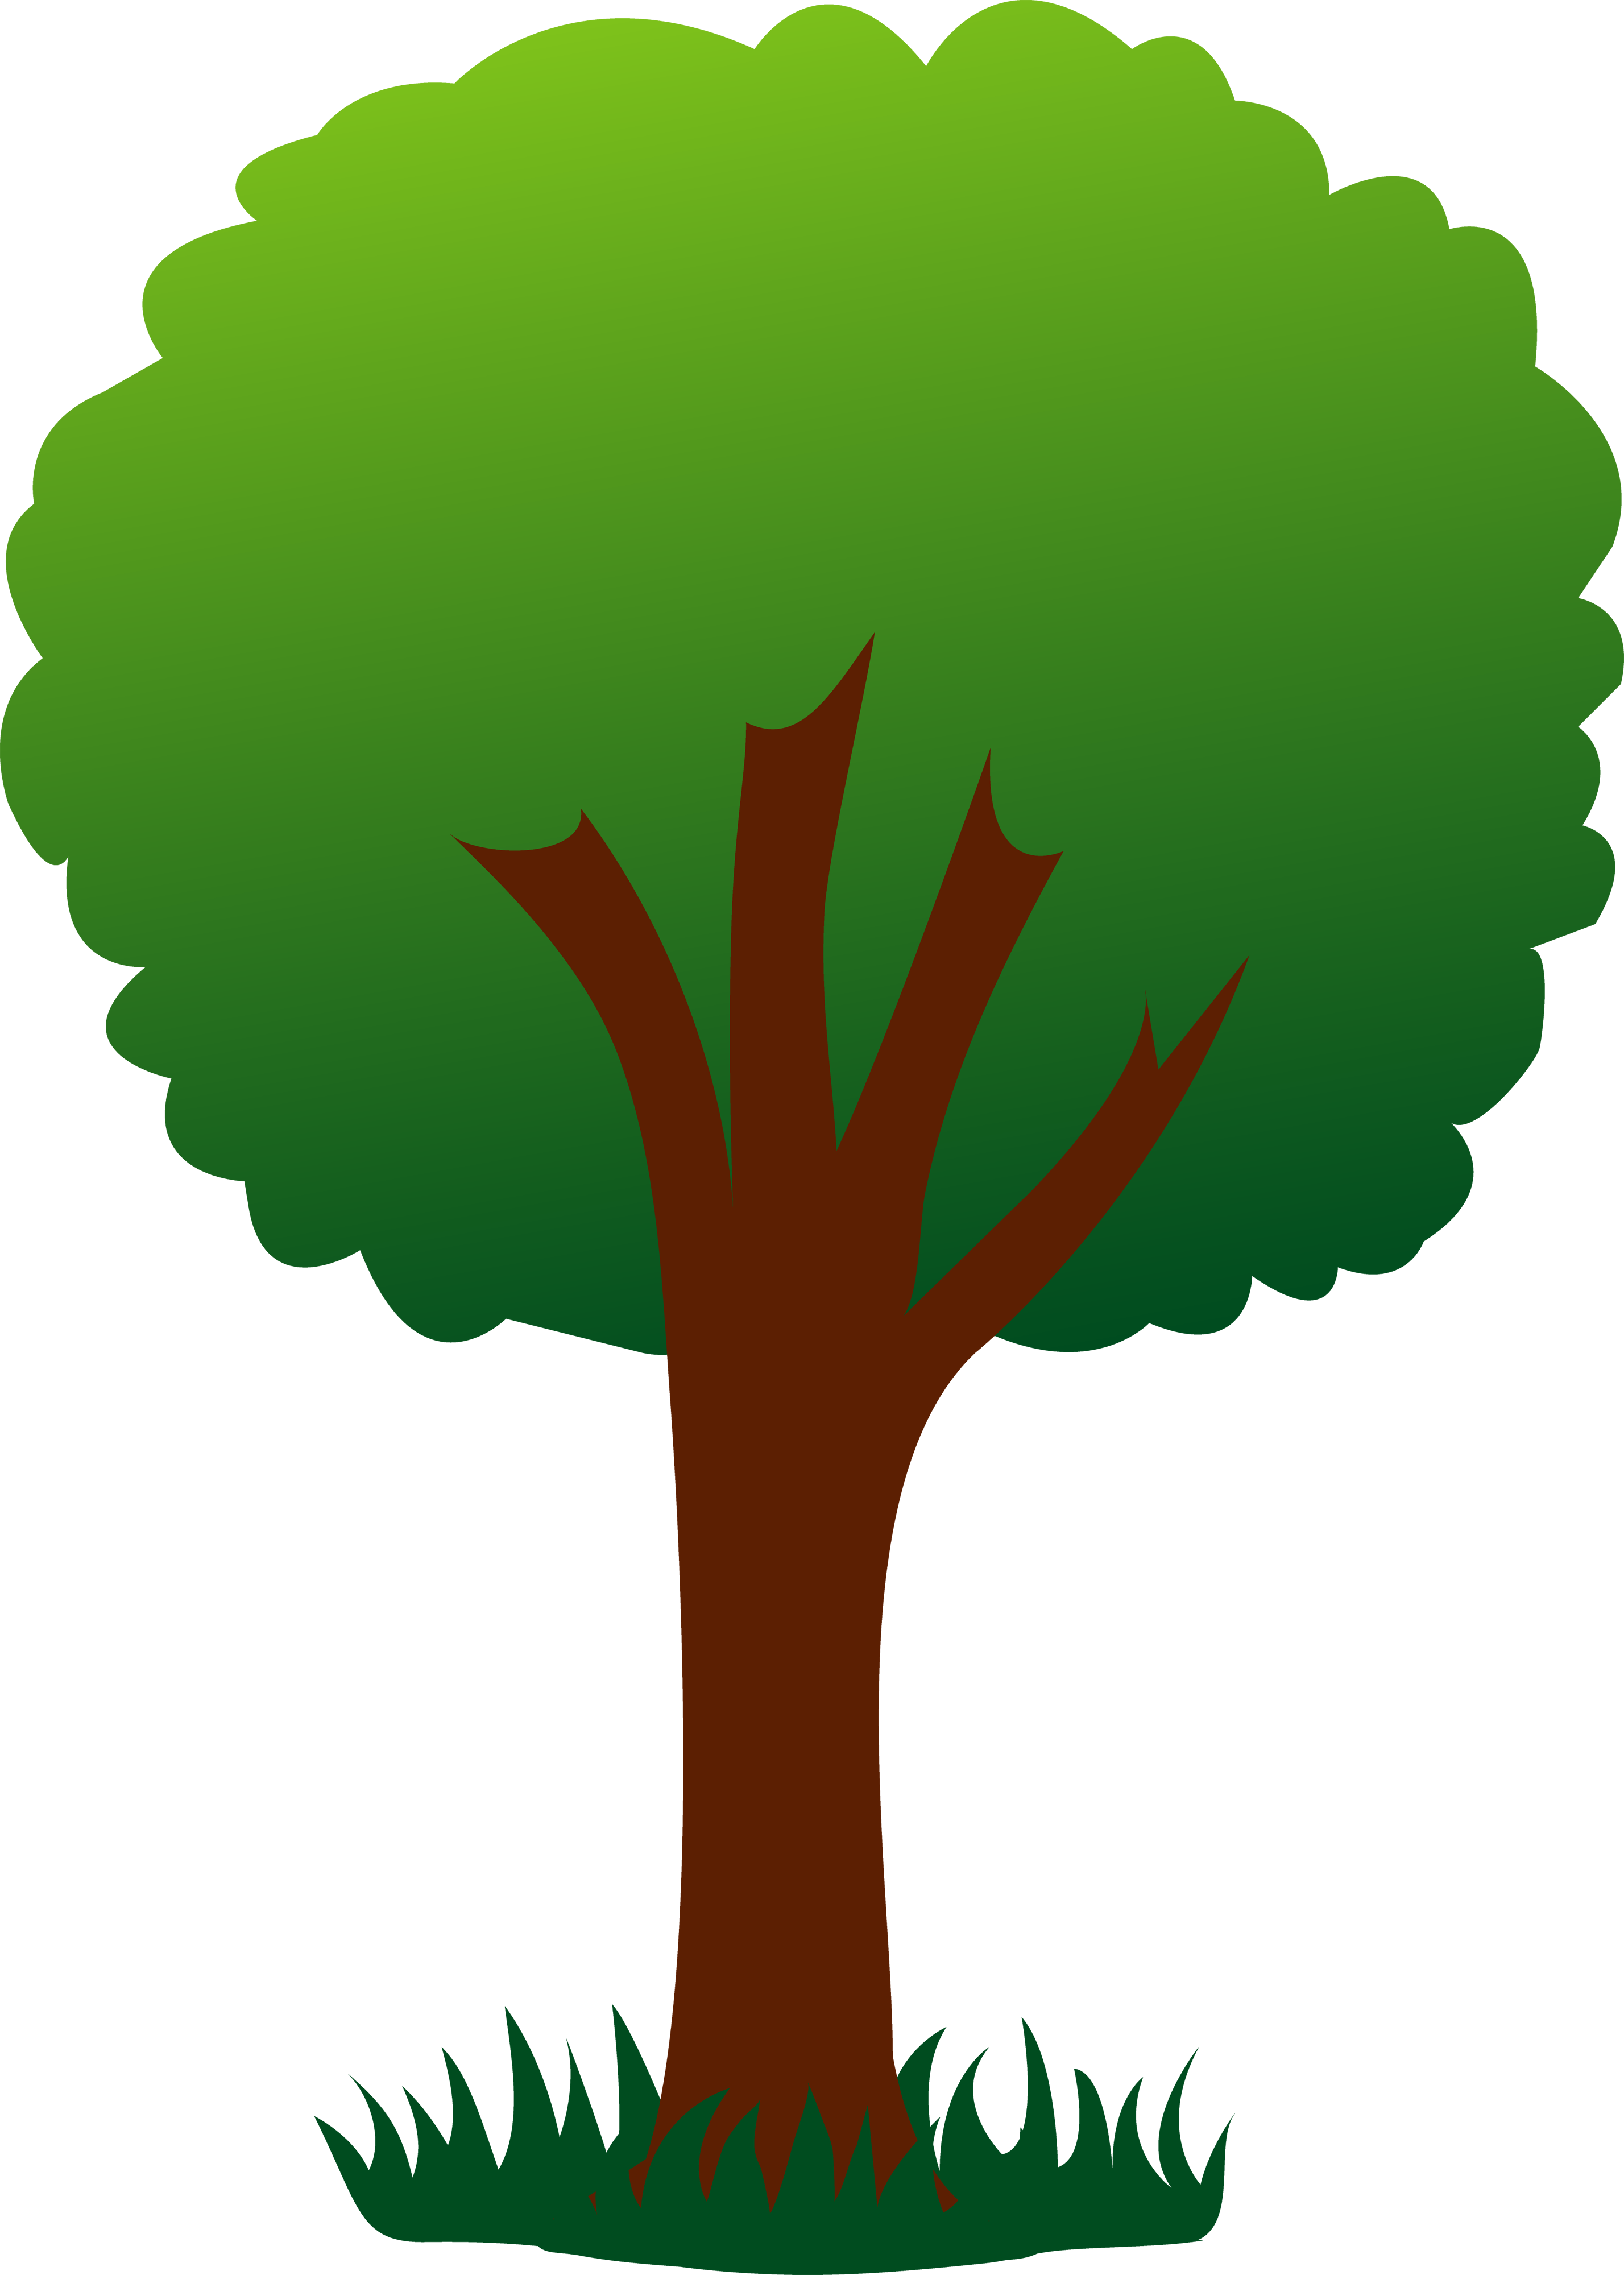 Free Green Tree Cliparts, Download Free Clip Art, Free Clip